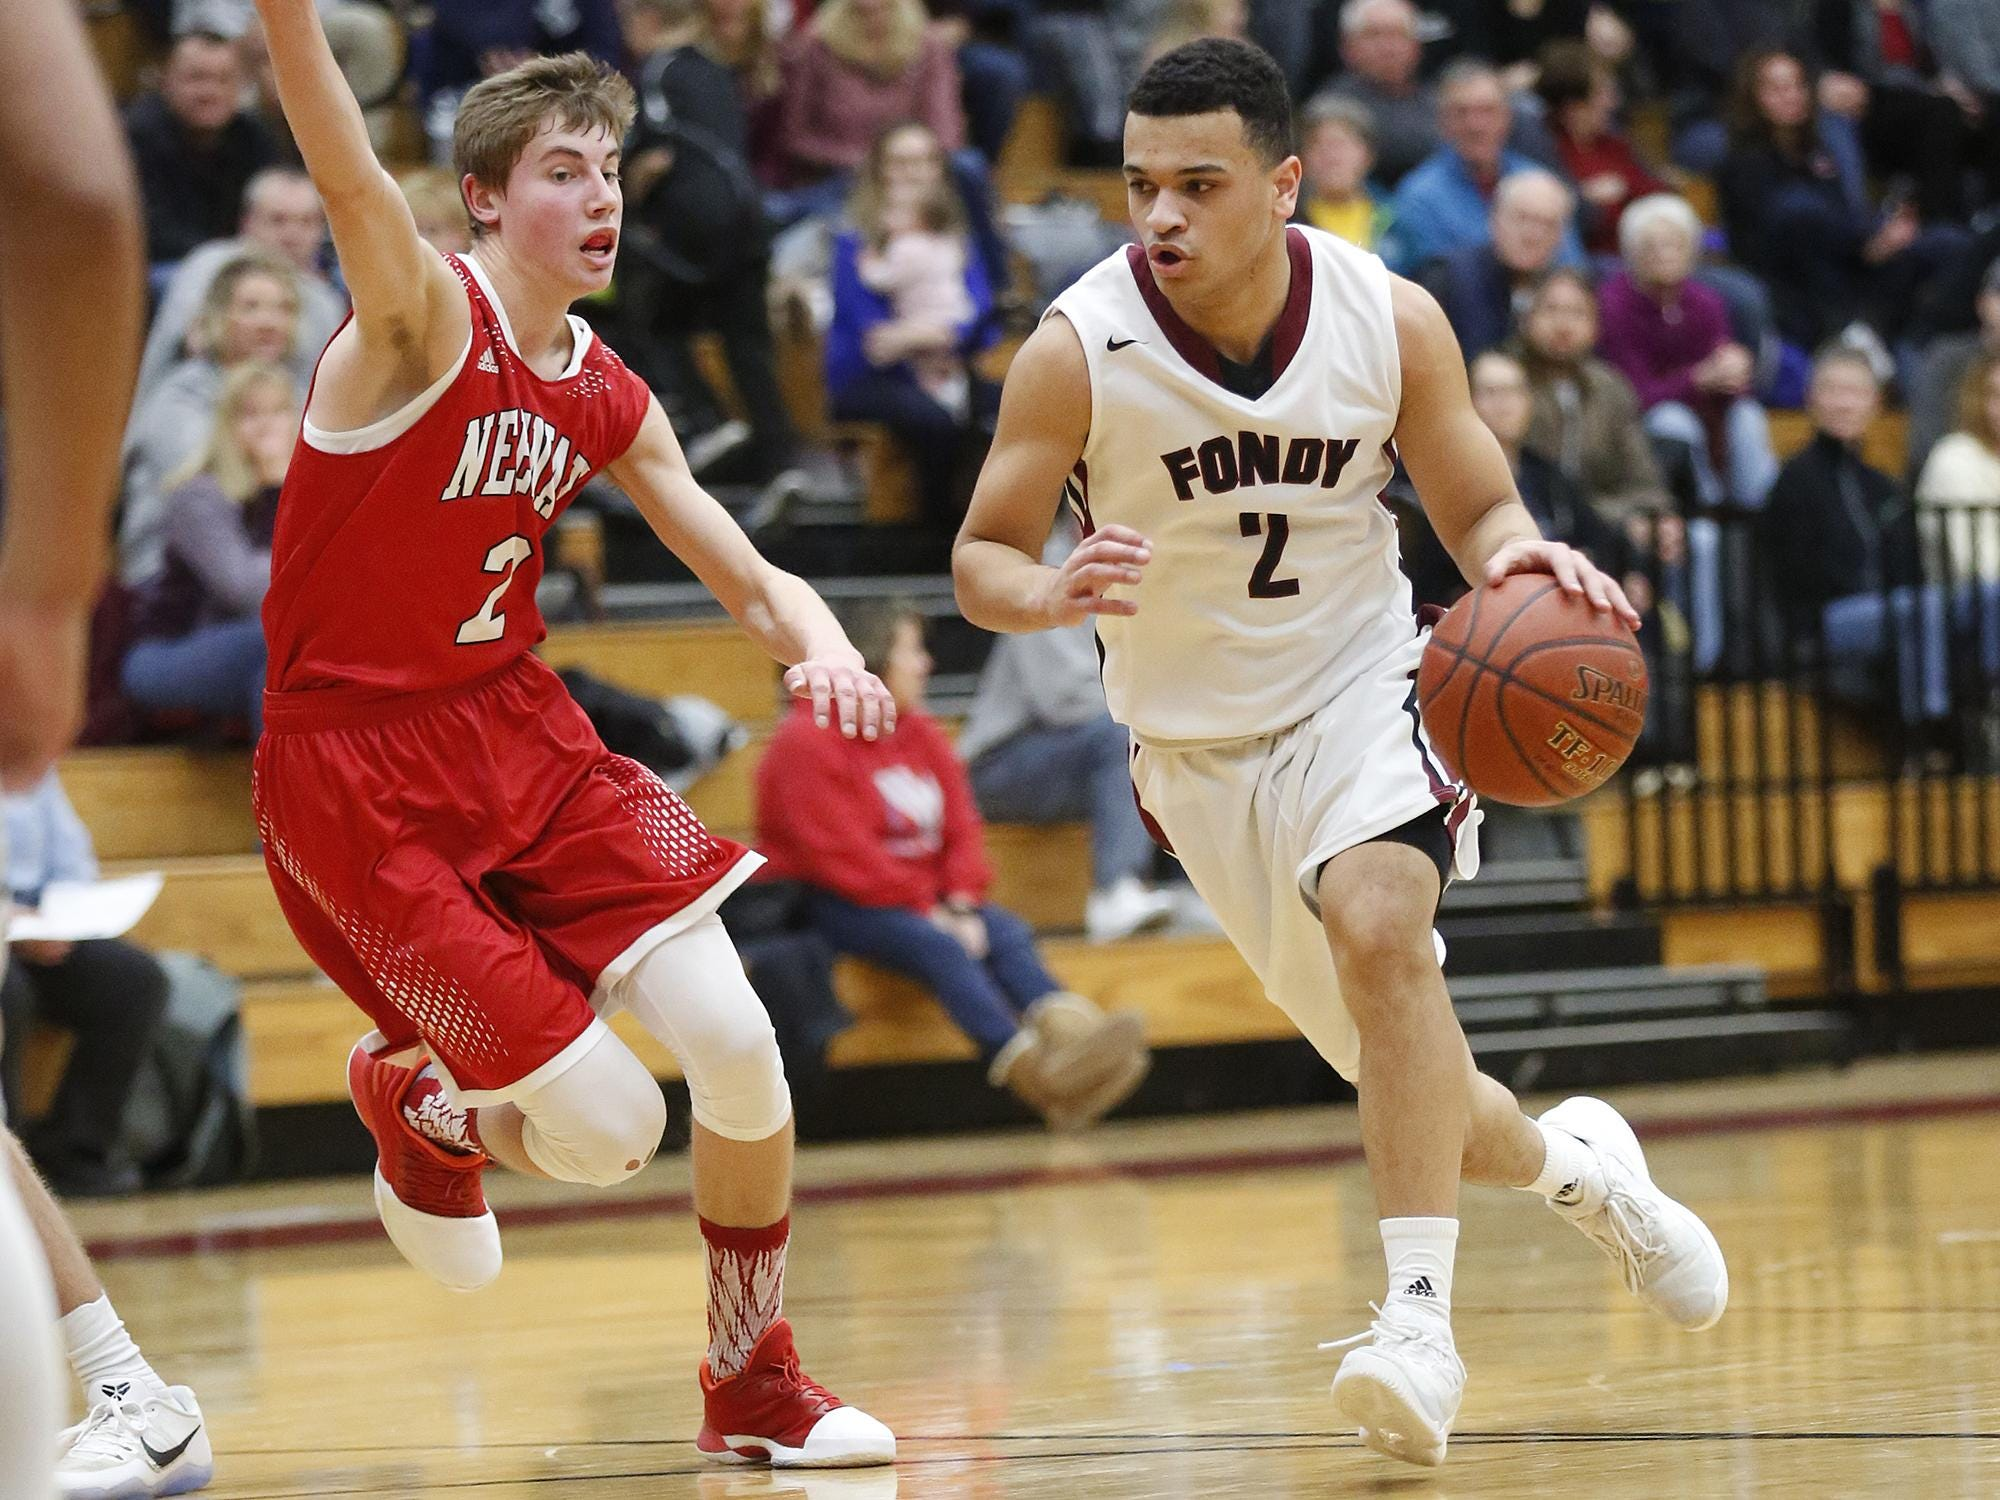 Caleb Goldstein of Fond du Lac drives to the basket against the Neenah defense Friday in Fond du Lac.